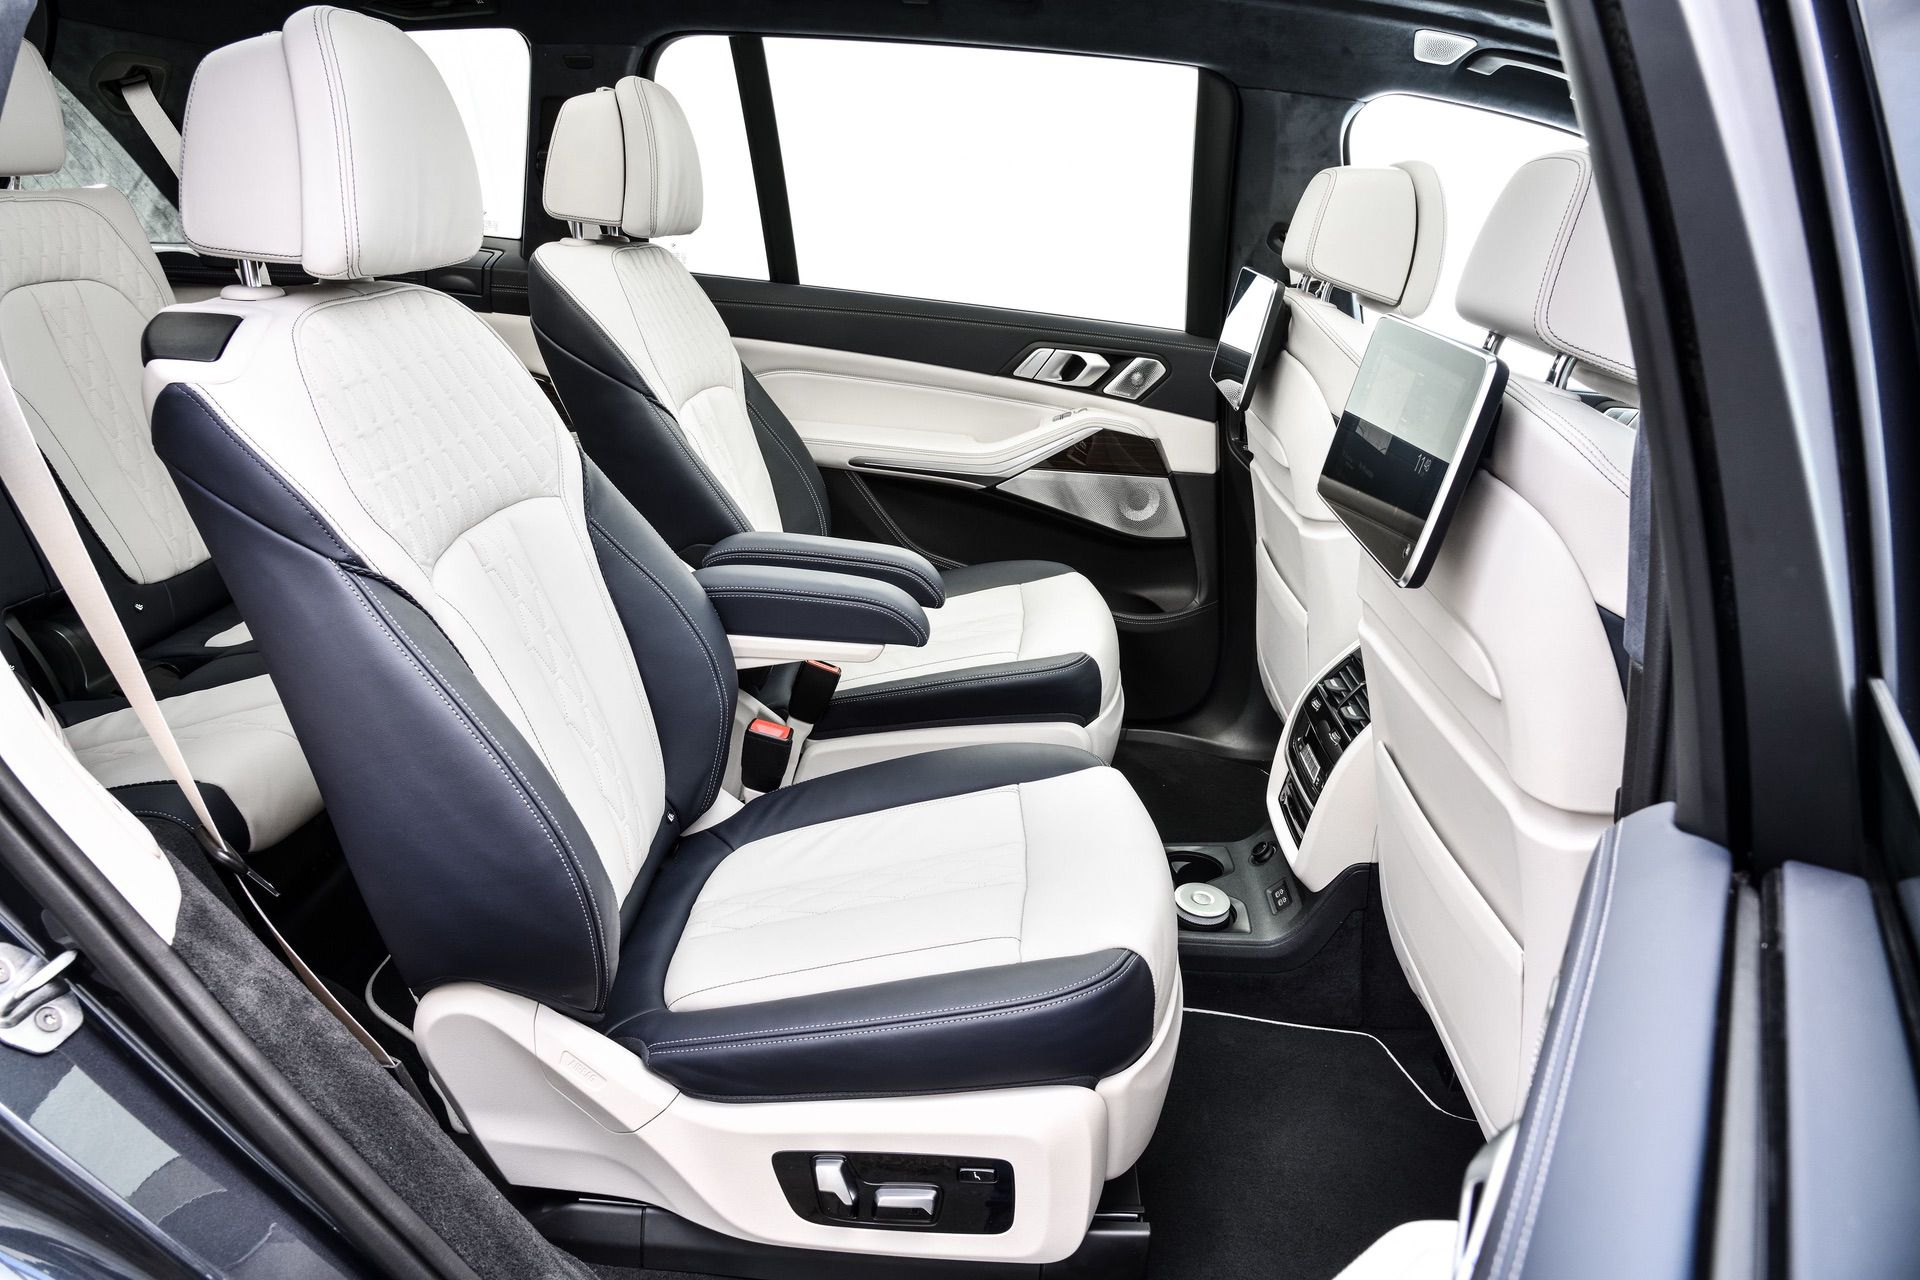 Fine Five Reasons Why The Bmw X7 Is The Ultimate Luxury Bimmer Gamerscity Chair Design For Home Gamerscityorg